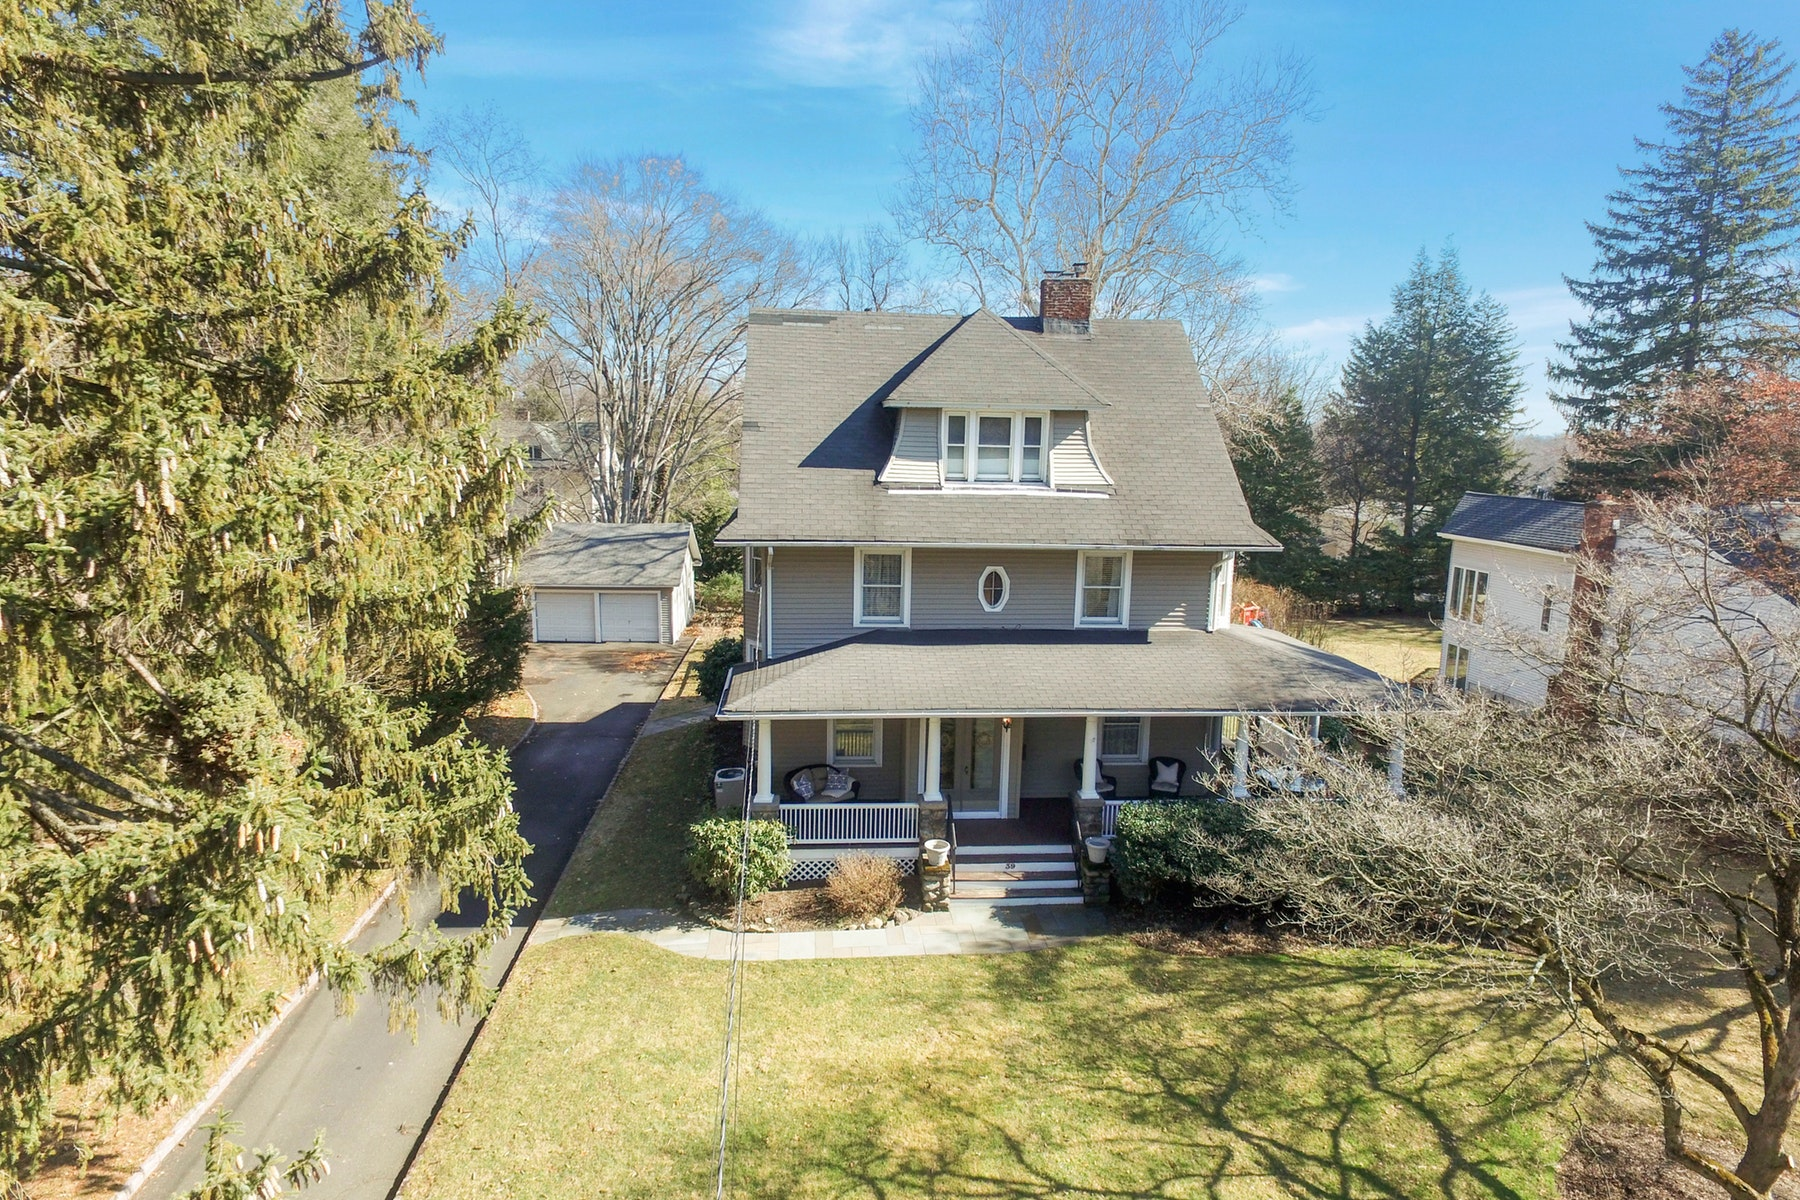 Single Family Home for Sale at Beautiful Colonial in Historic Prospect Park 39 Forest Road, Glen Rock, New Jersey 07452 United States